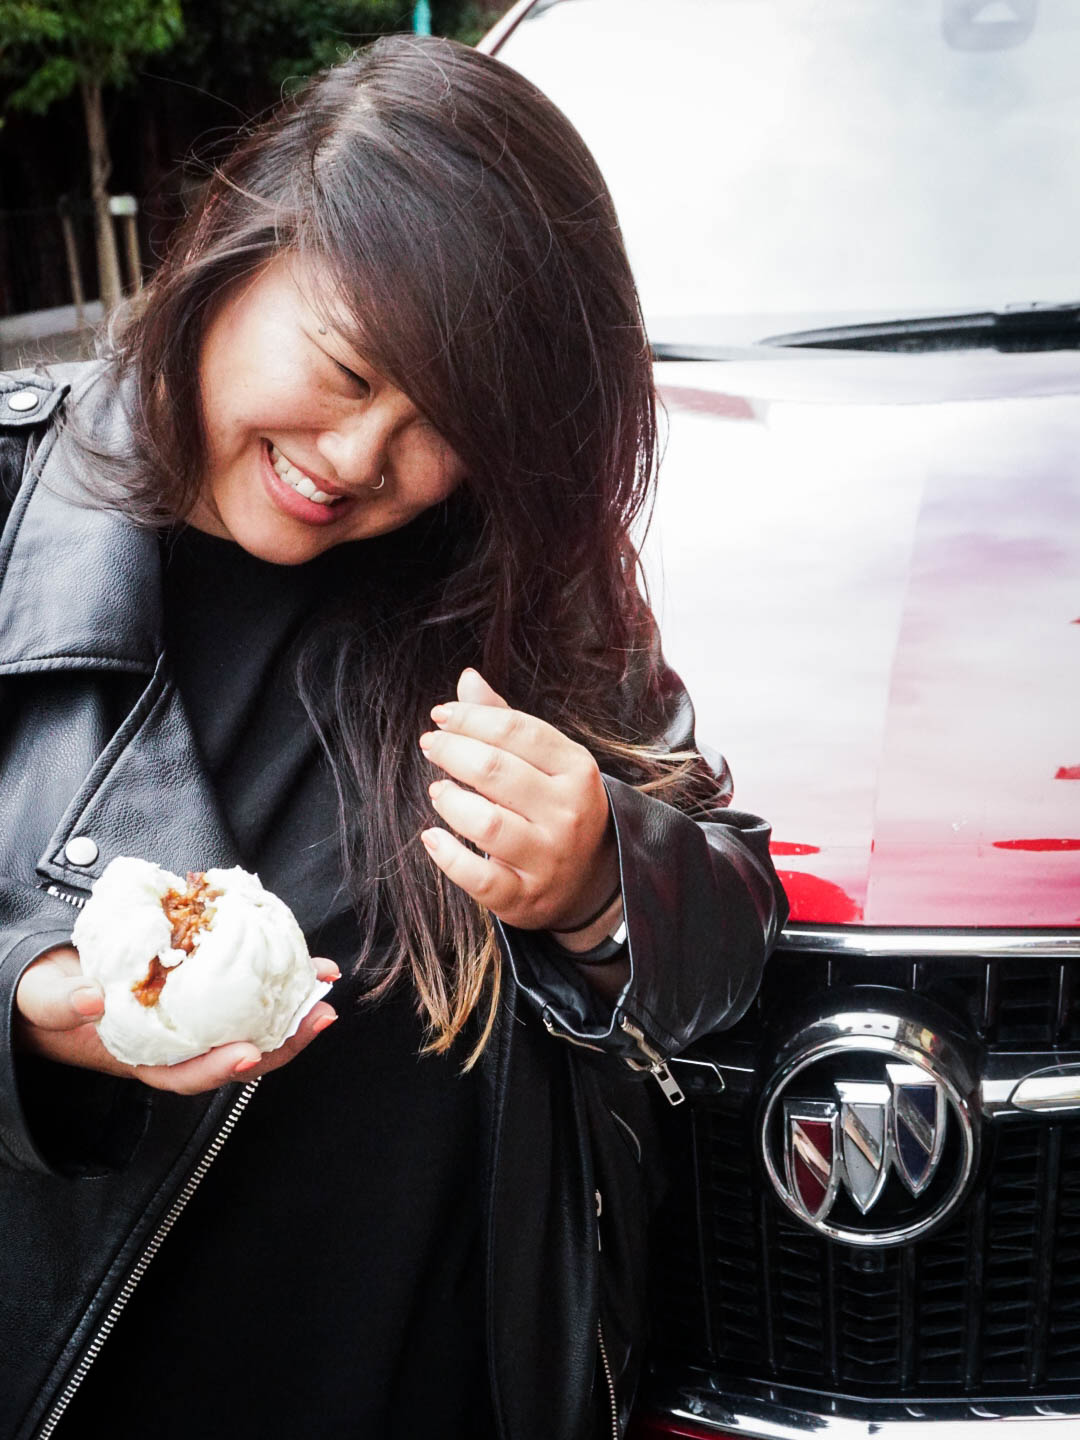 Bao from Good Mong Kok Bakery in San Francisco in front of Buick Enclave 2018